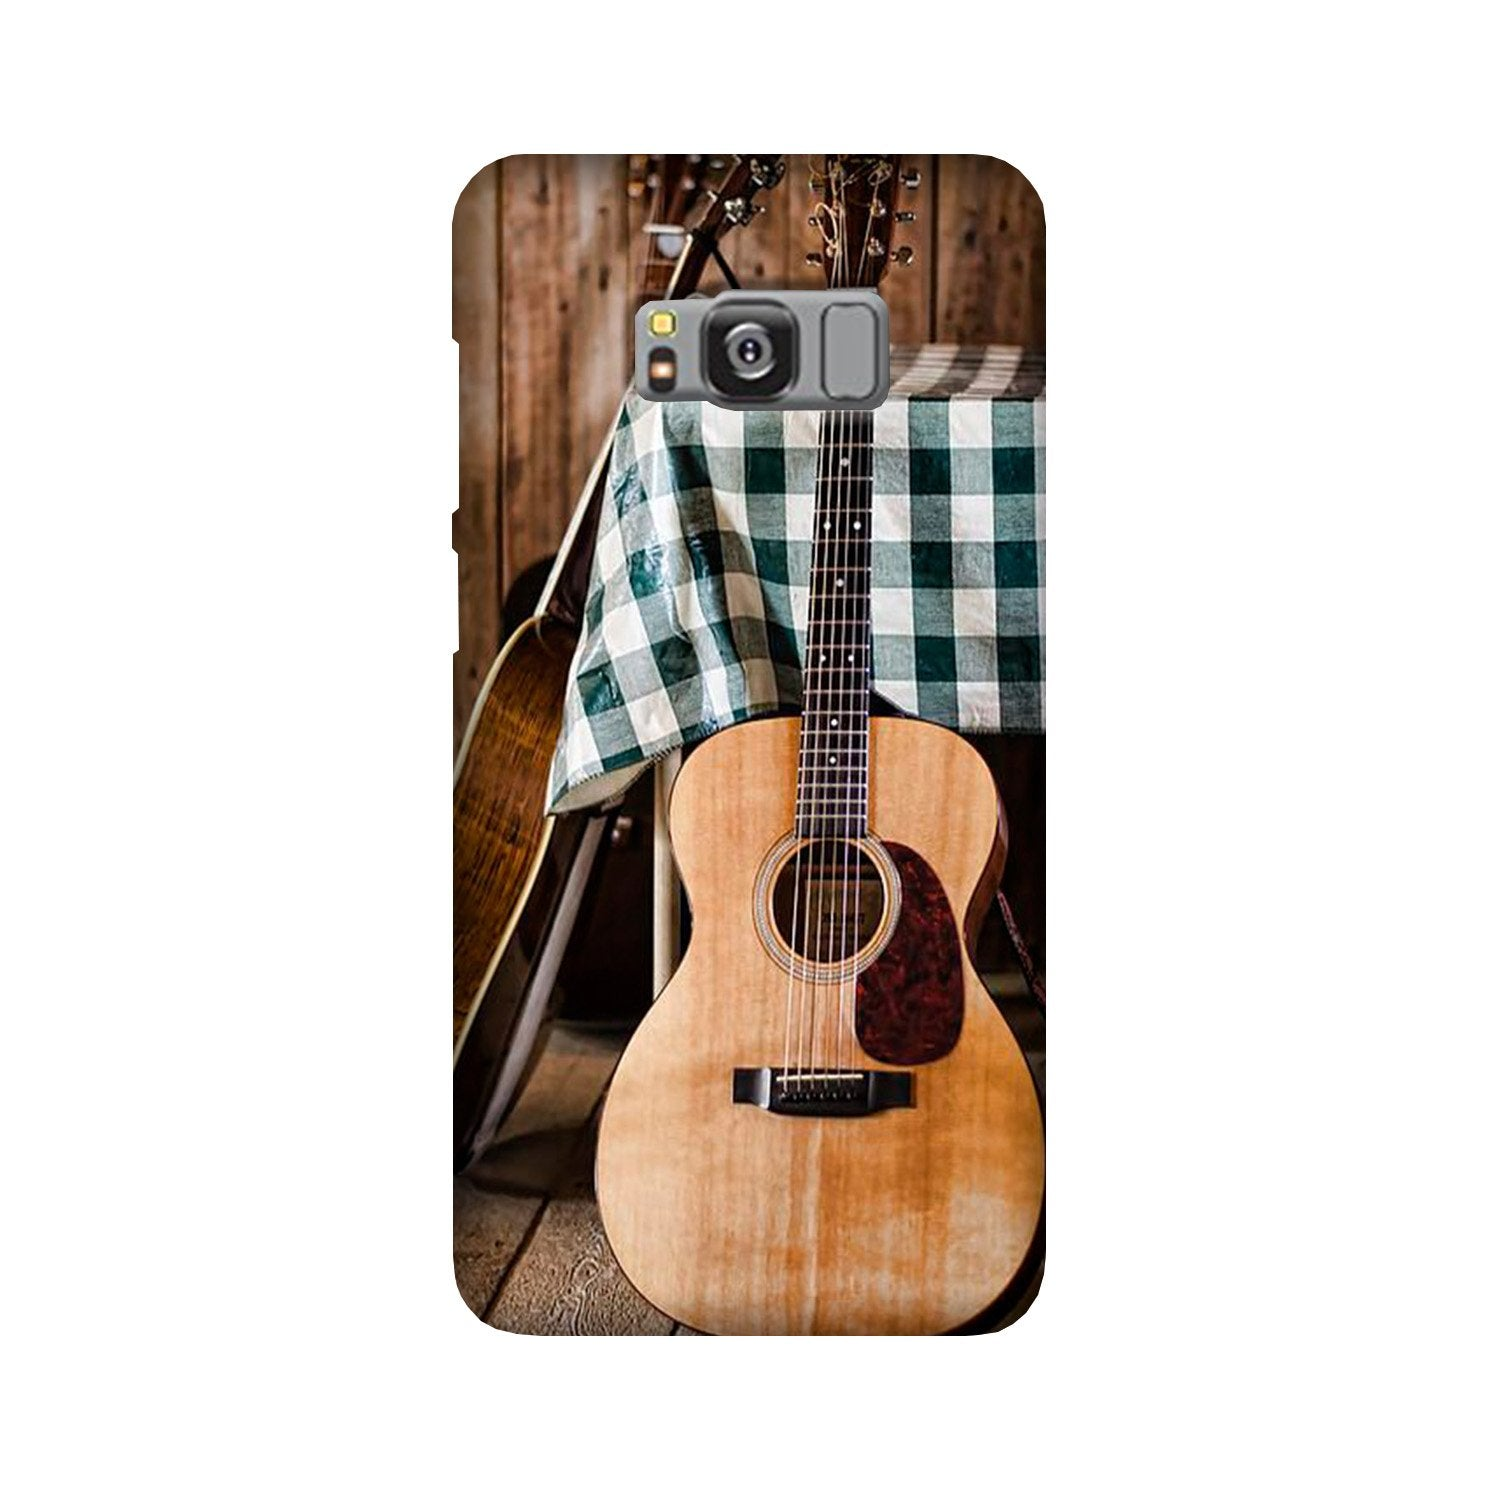 Guitar2 Case for Galaxy S8